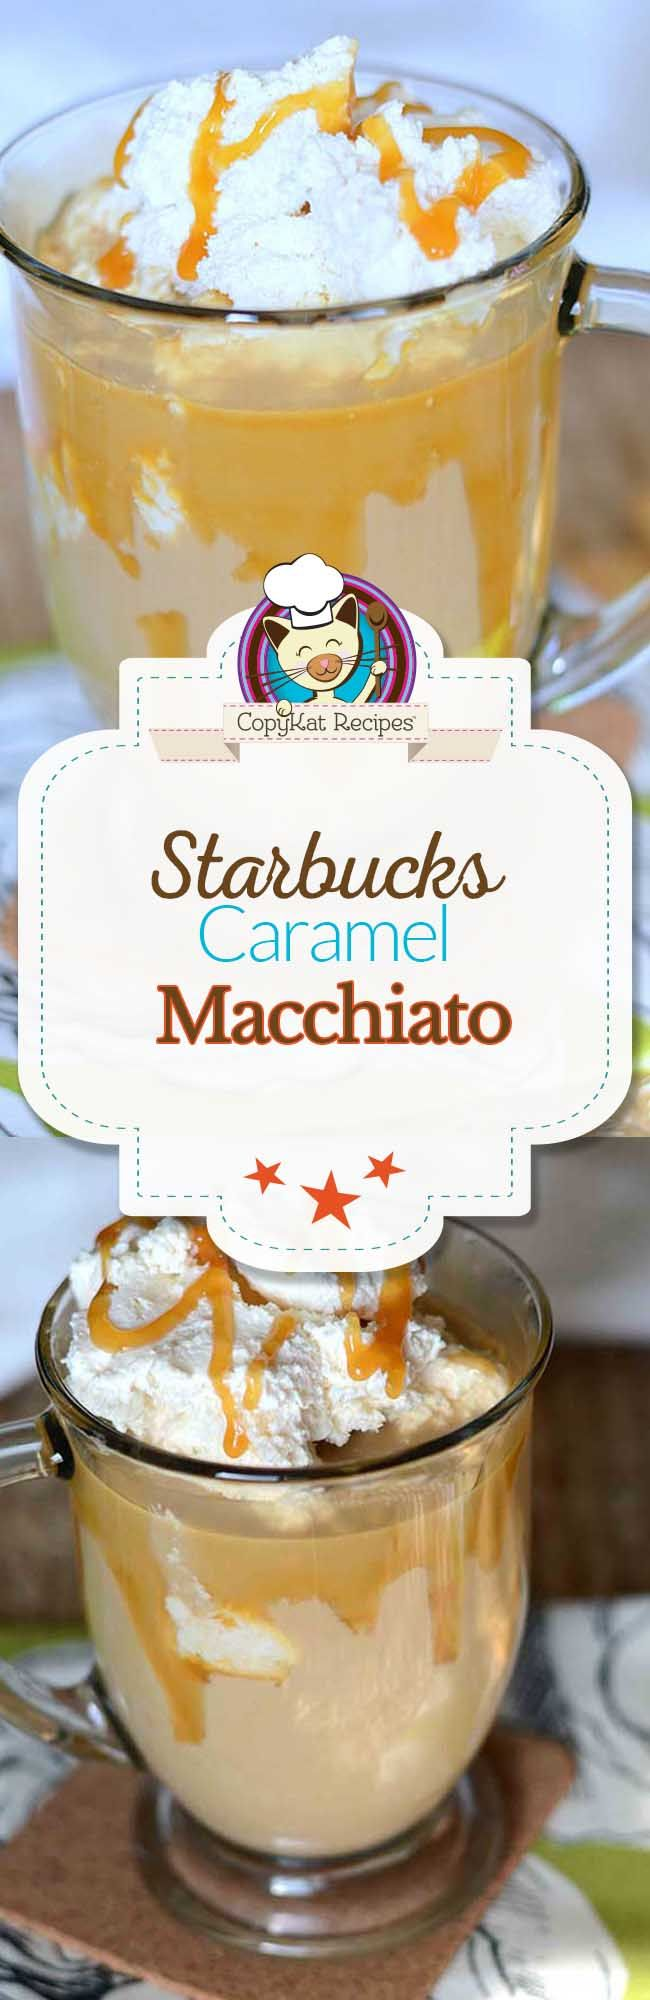 Enjoy a Starbucks Caramel Macchiato copycat style. Coffee, milk, caramel syrup, and ice make up this wonderful coffee beverage that you will love.